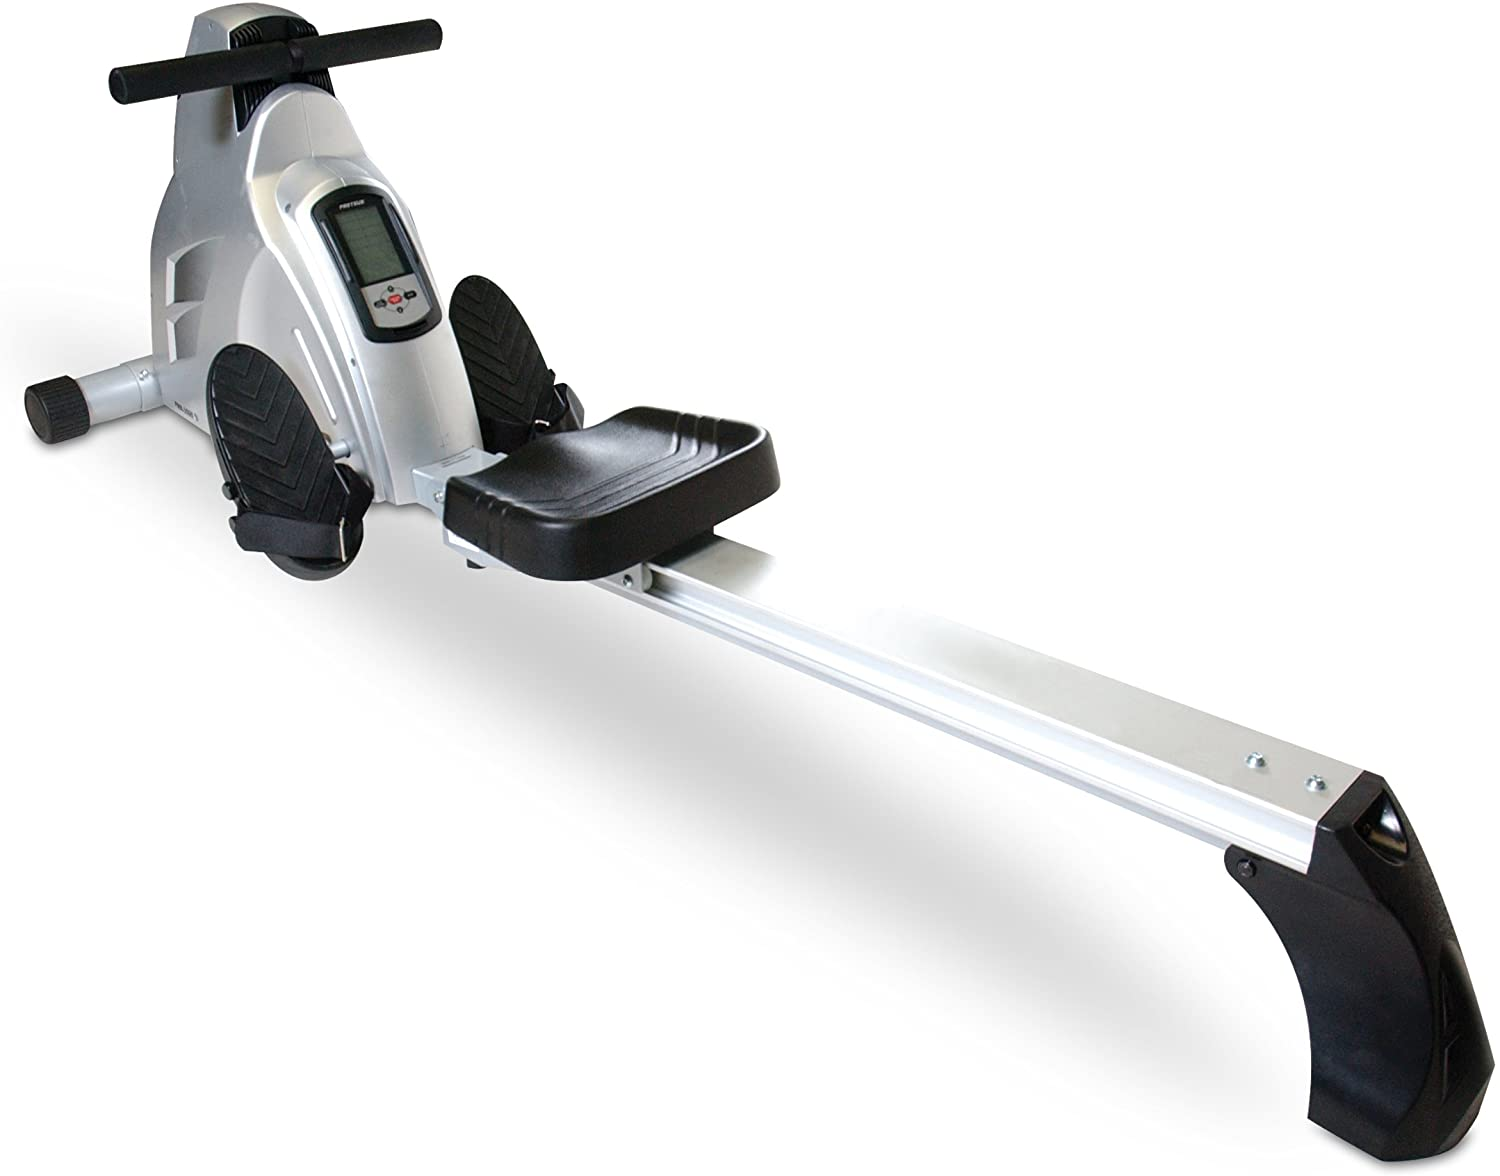 10 best rowing machines for whole body home exercise 2021 herstylecode 6 10 Best Rowing Machines for Whole Body Home Exercise 2021